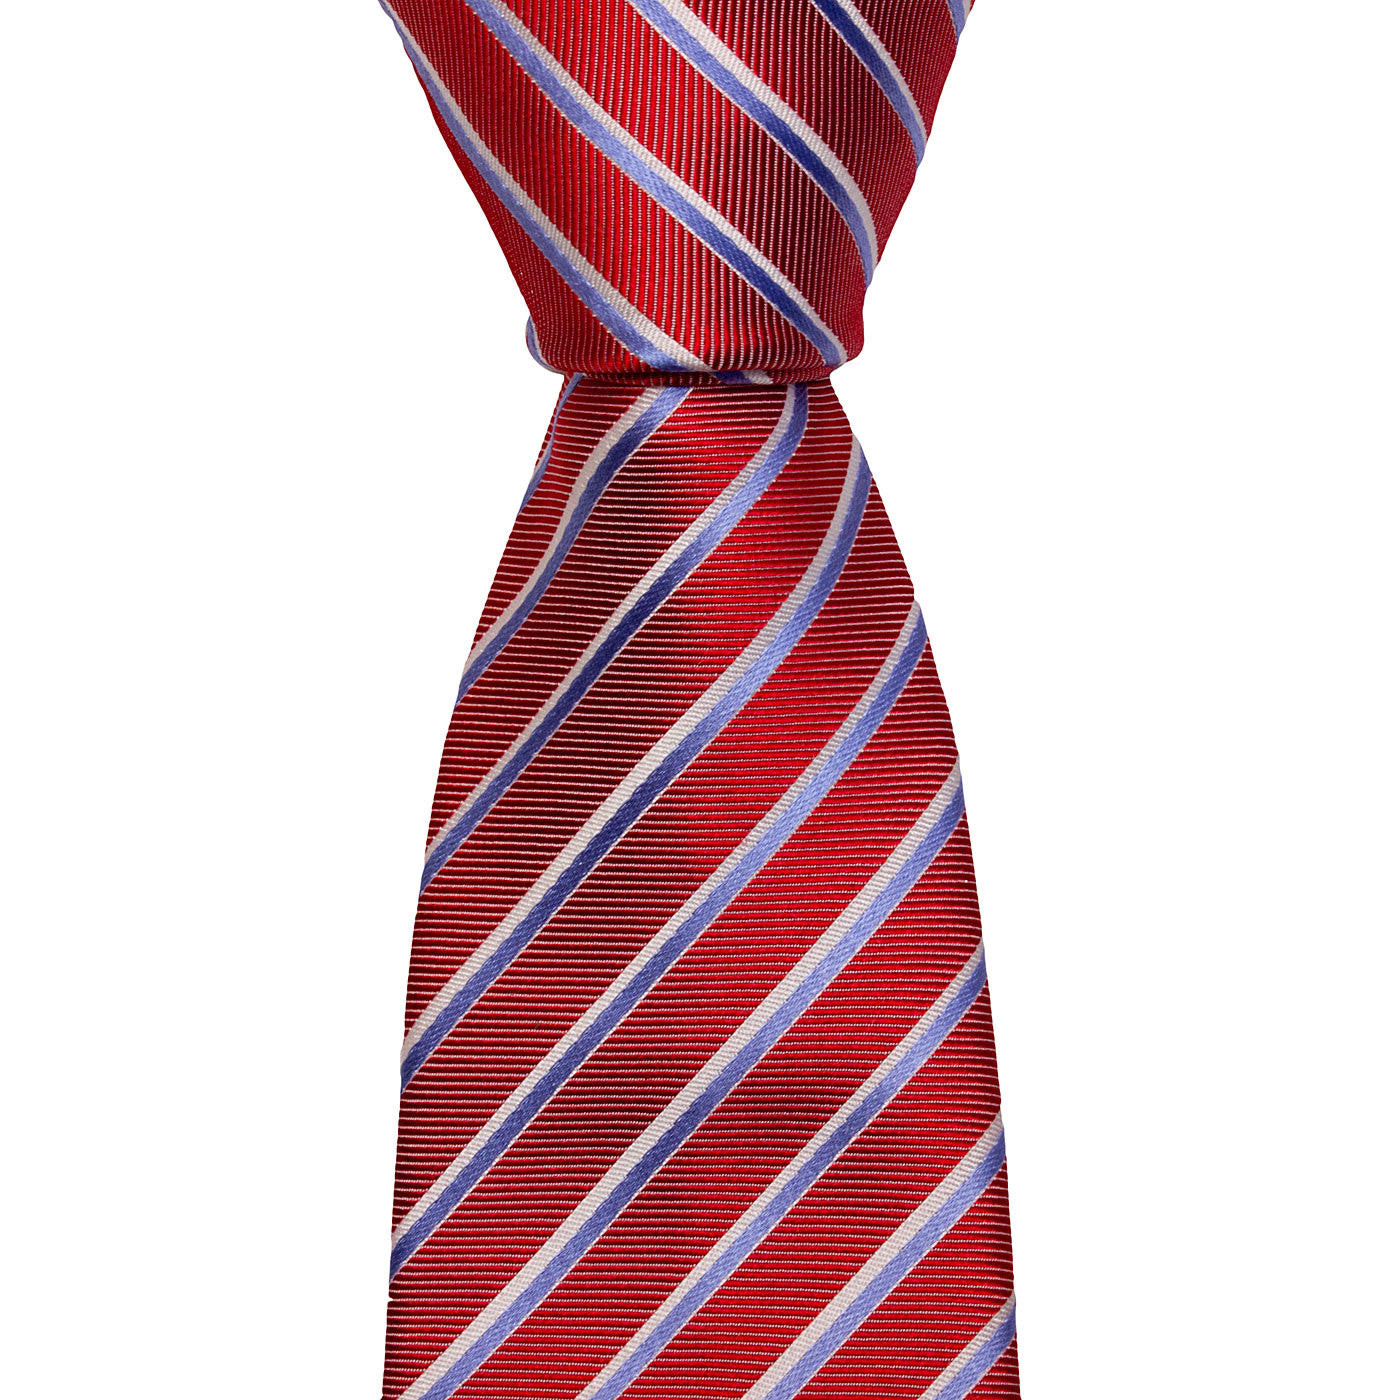 Hugo Boss Tie Hugo Boss Tie Diagonal Stripes In Red, Light Blue And